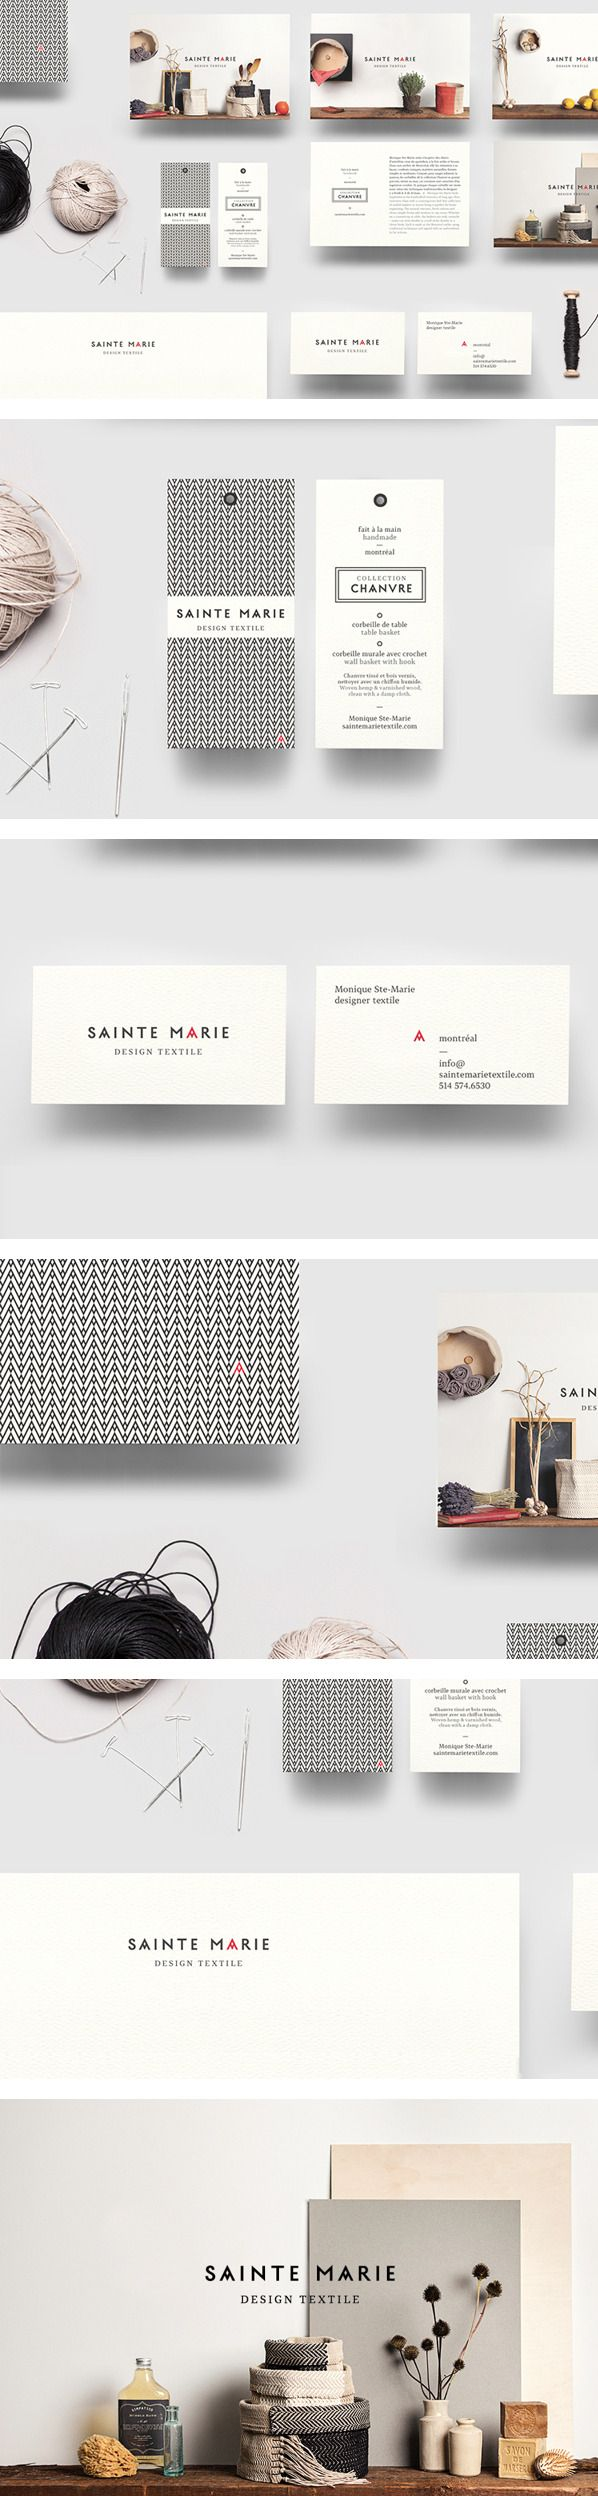 Cool Brand Identity Design on the Internet. Sainte Marie. #branding…